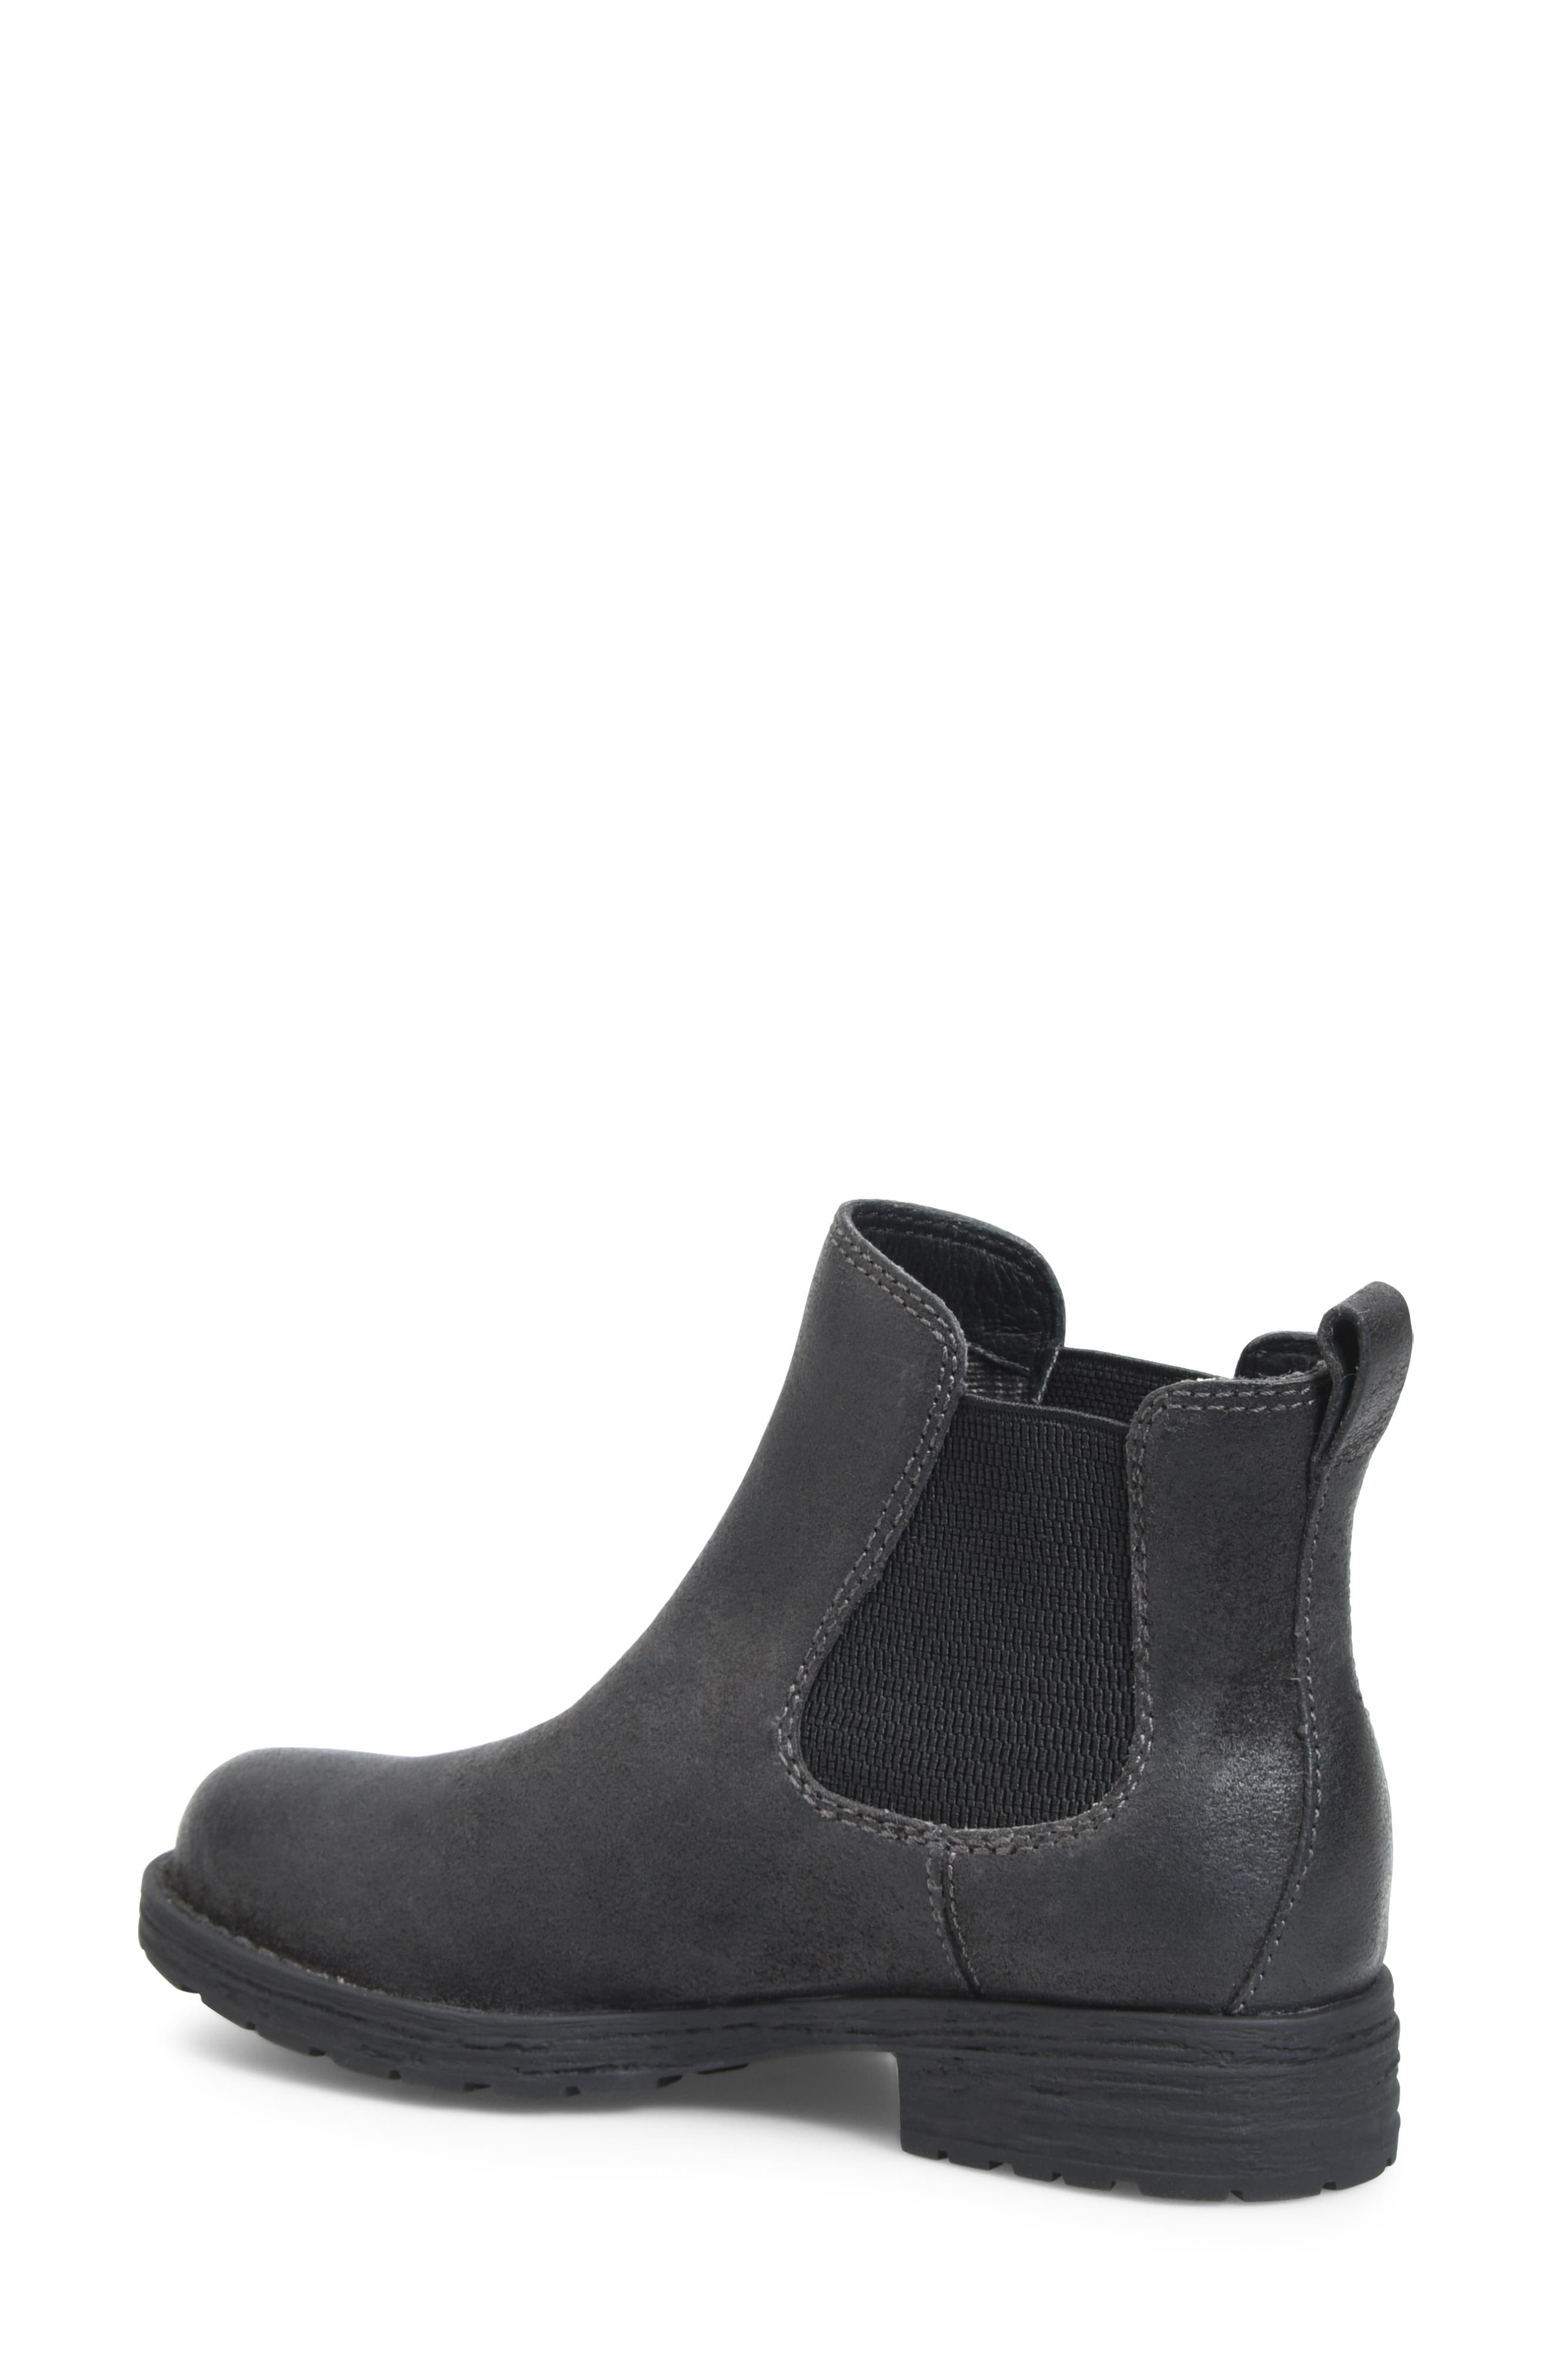 Cove Waterproof Chelsea Boot,                             Alternate thumbnail 2, color,                             DARK GREY DISTRESSED LEATHER